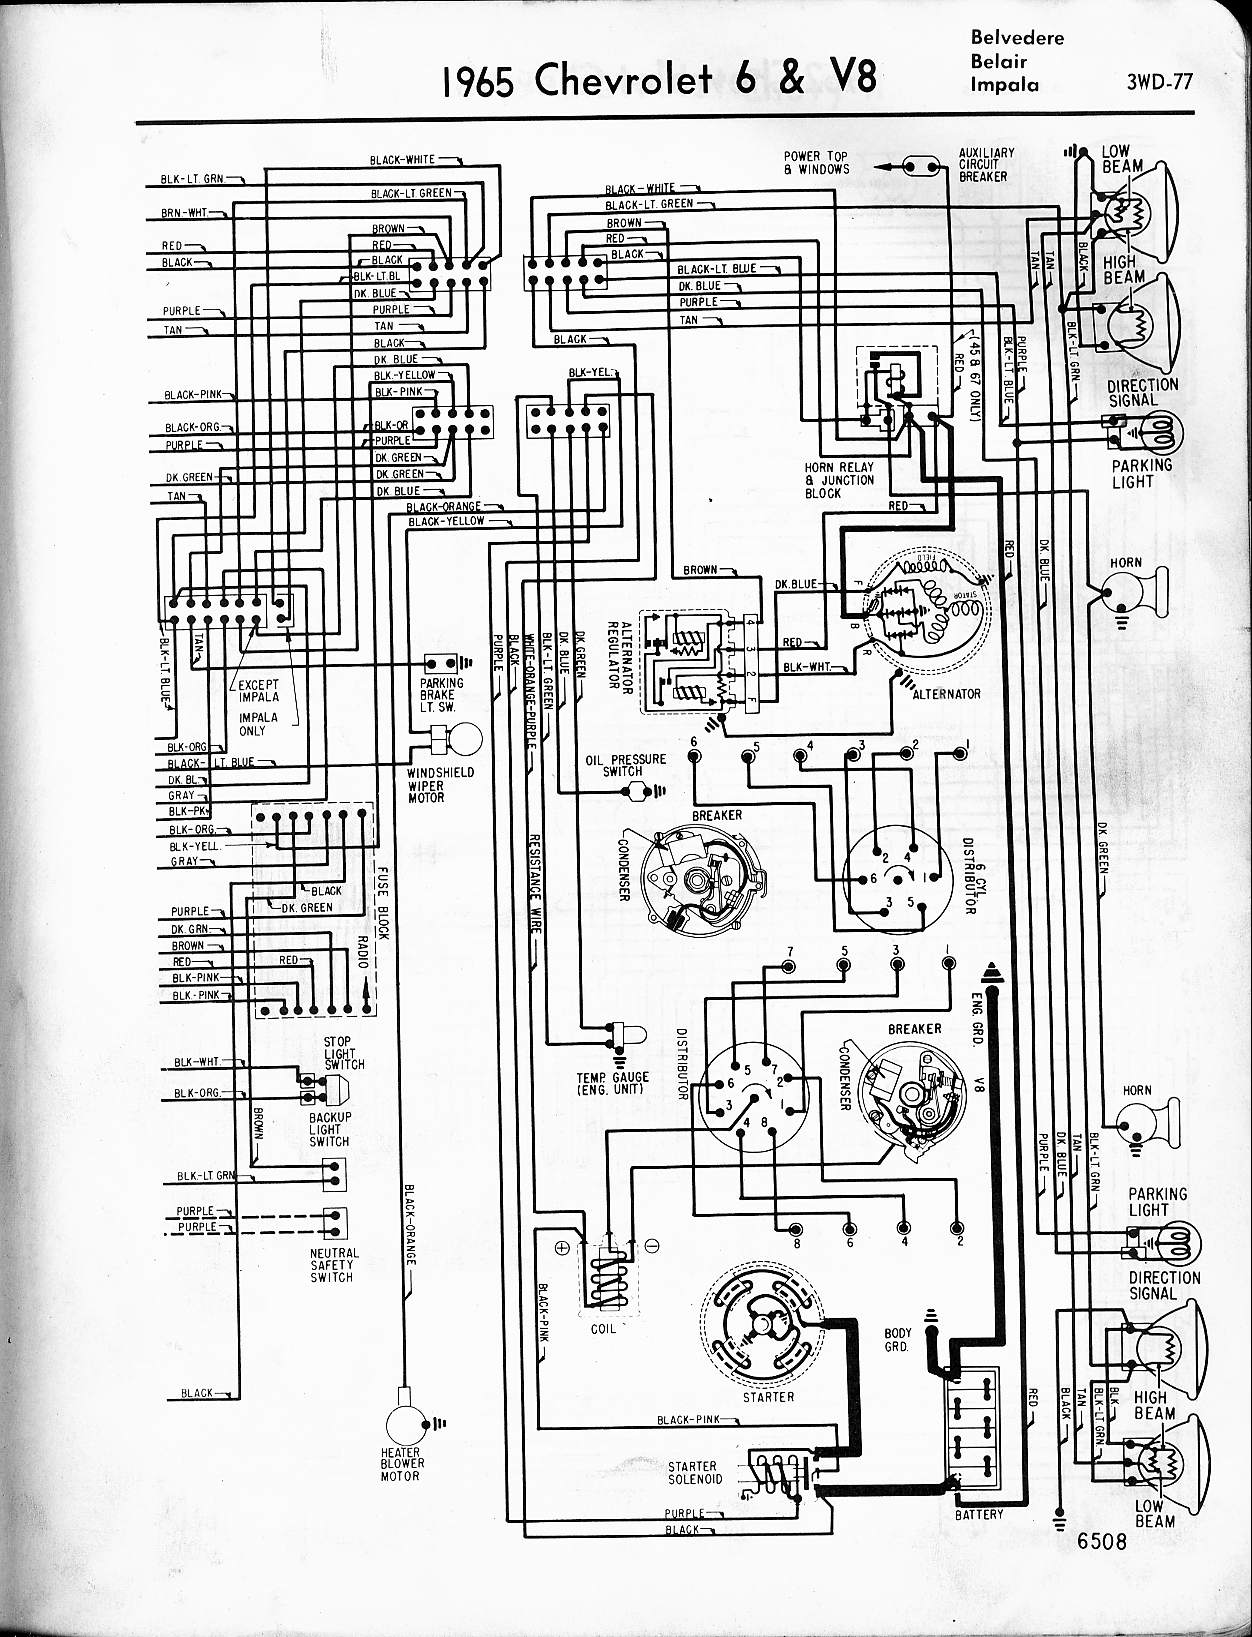 hight resolution of 1965 chevrolet wiring diagram wiring diagram todays 63 chevy pickup wiring diagram 57 65 chevy wiring